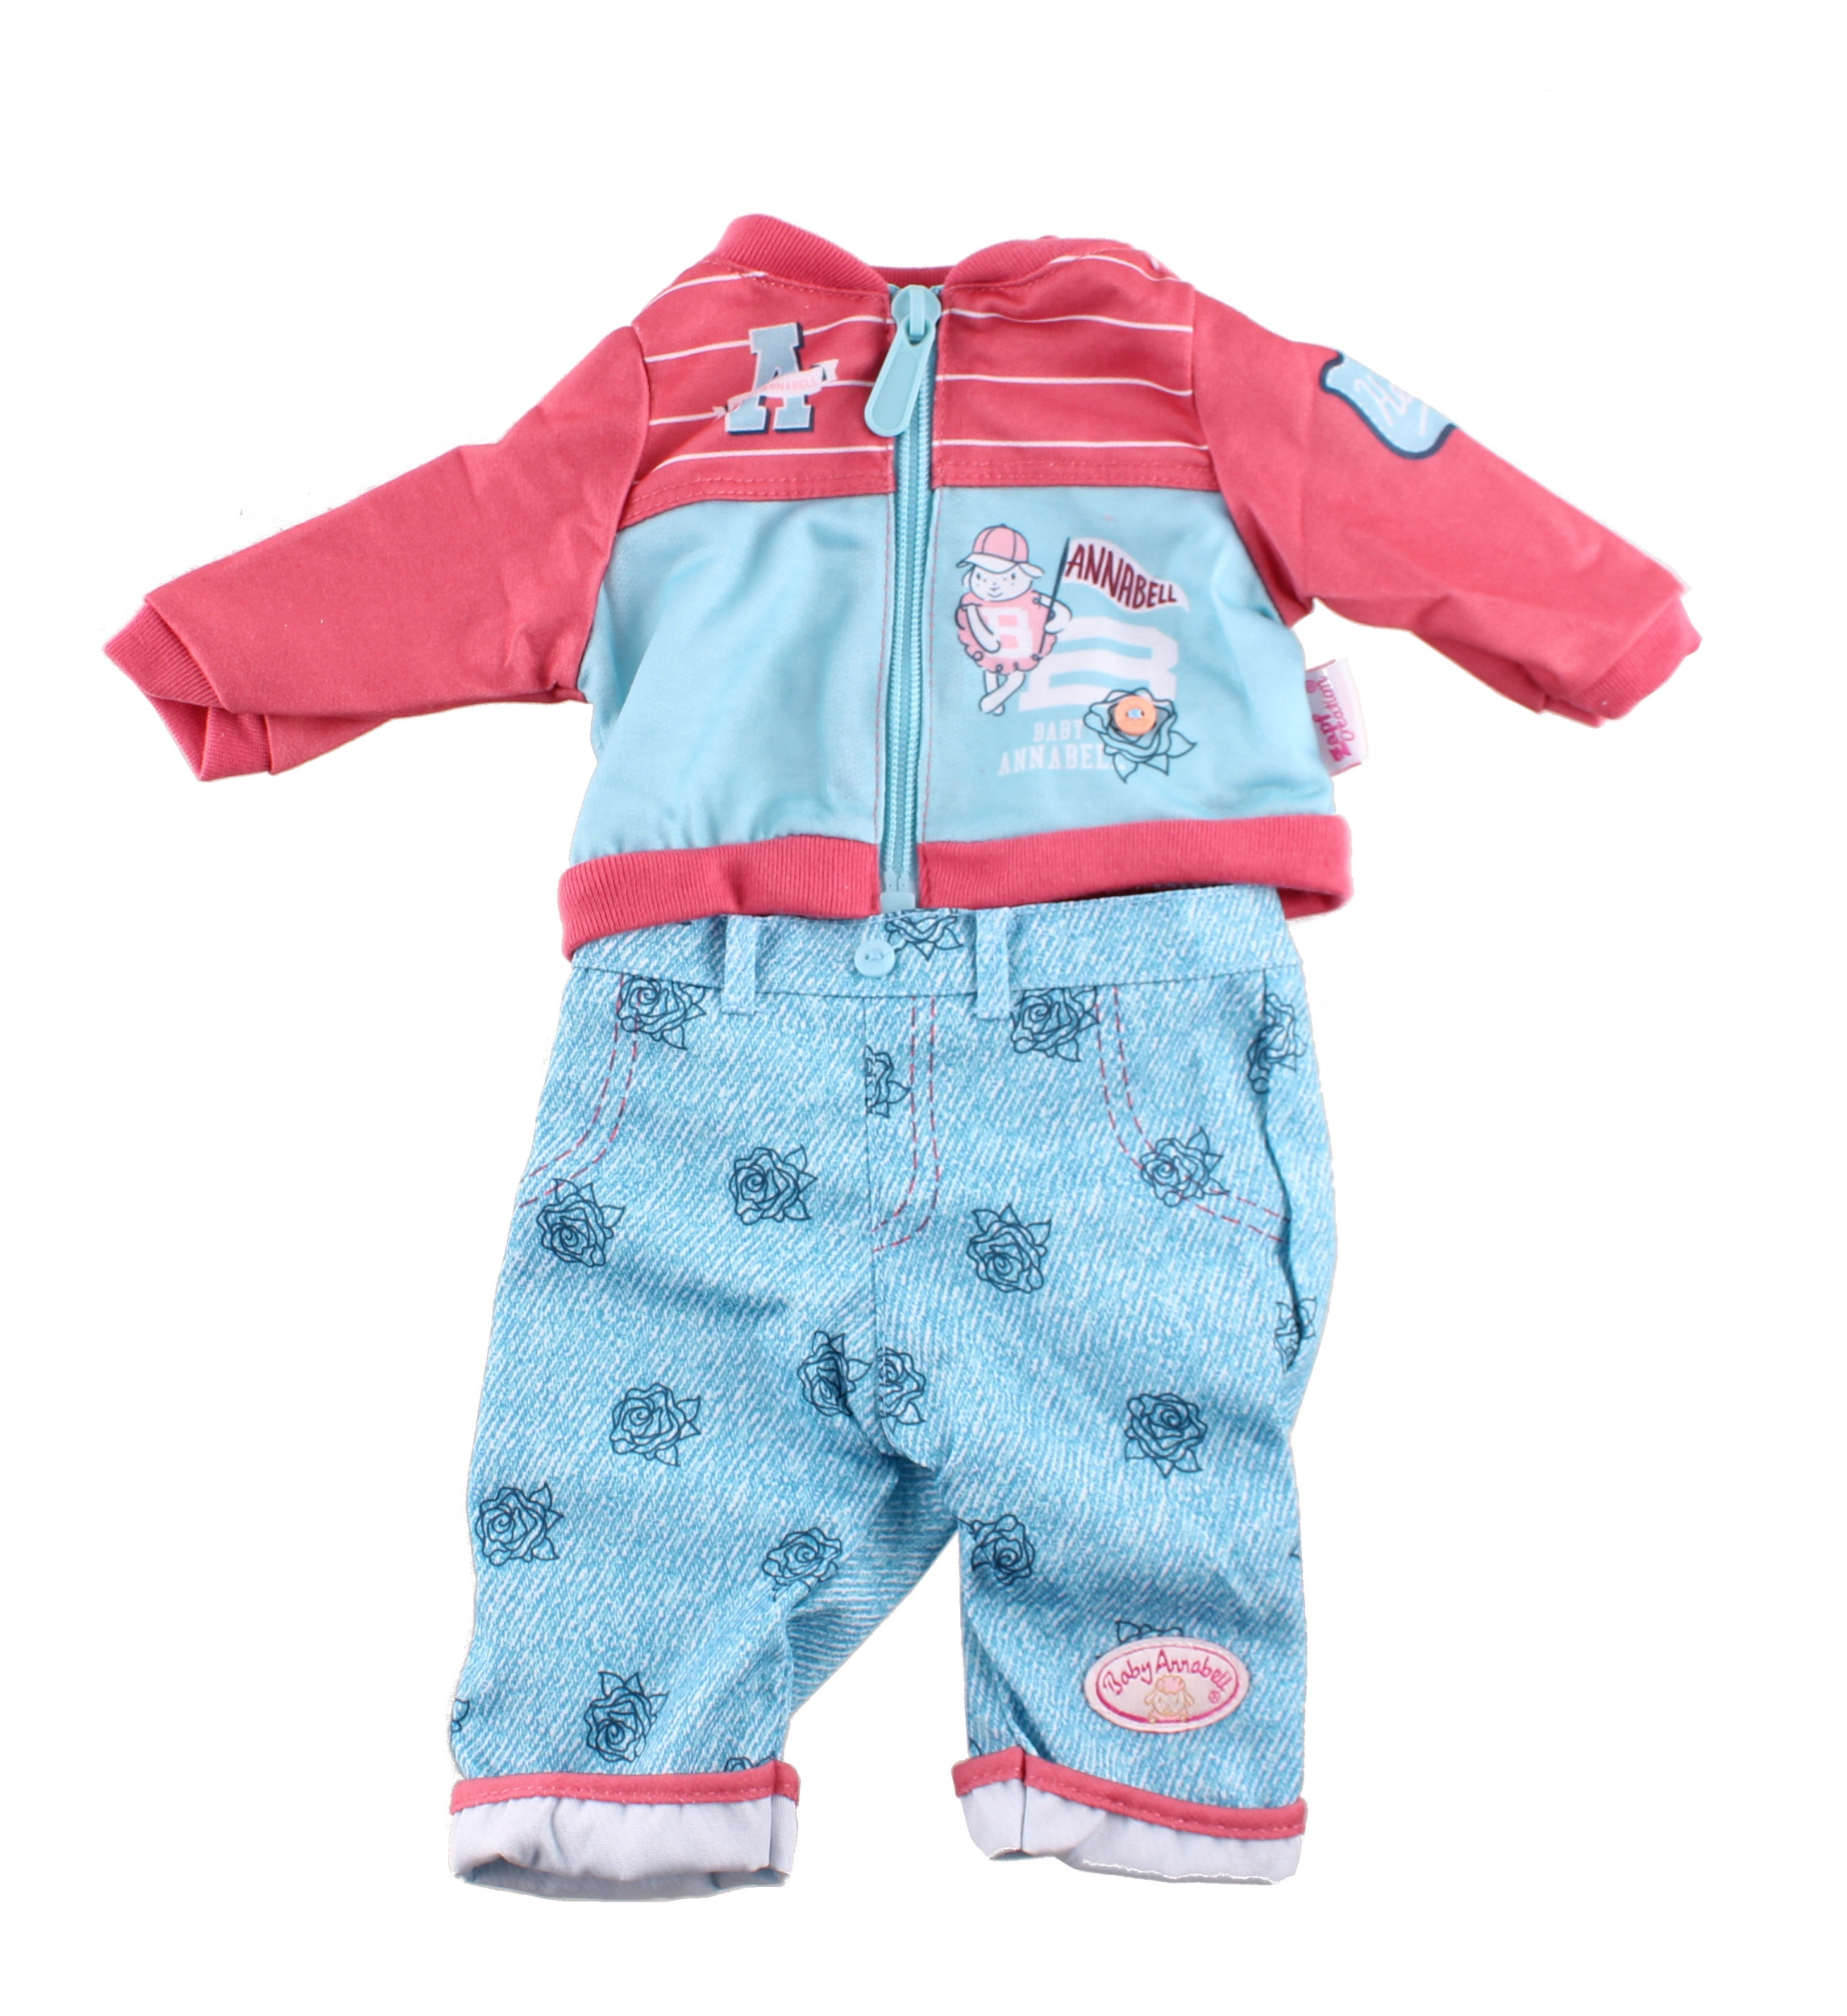 Bad Set For Baby Baby Annabell Clothes Set For Doll Of 46 Cm Blue 2 Piece